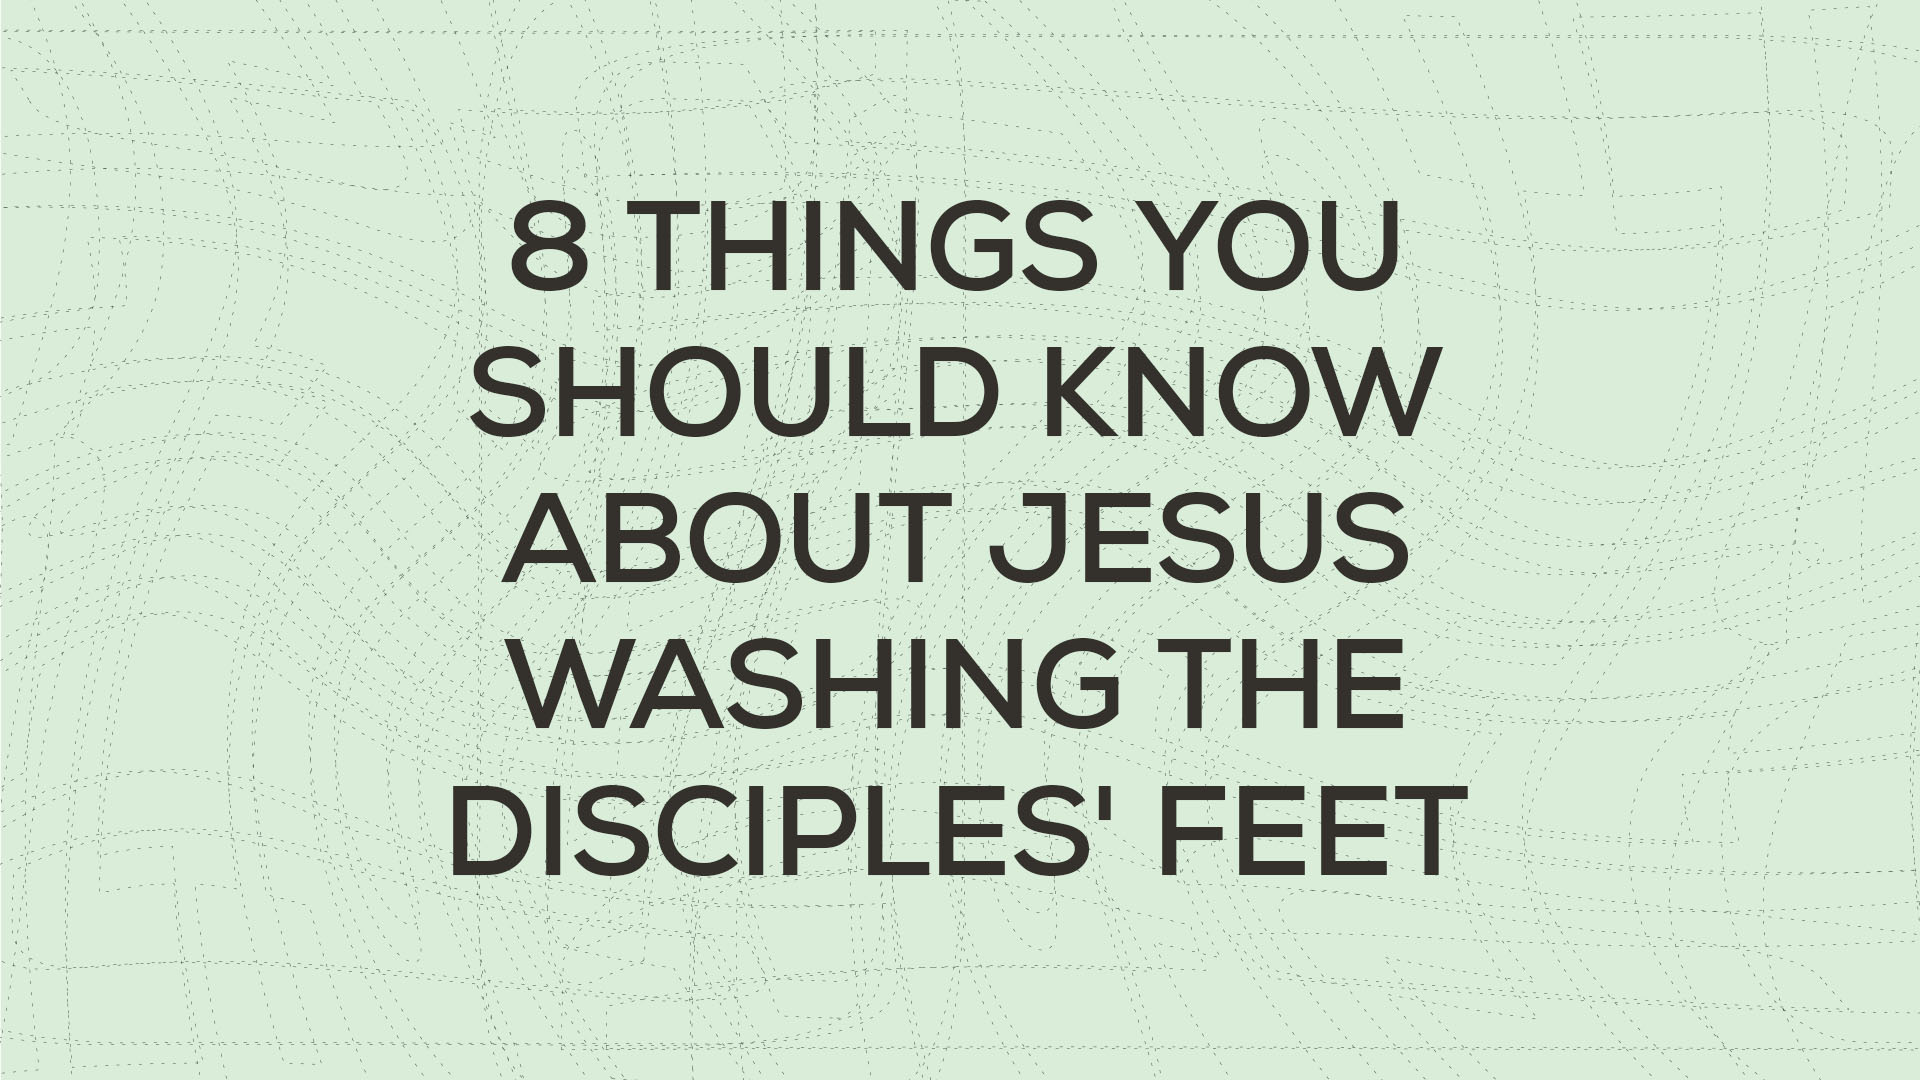 Eight Things You Should Know About Jesus Washing His Disciples' Feet Hero Image